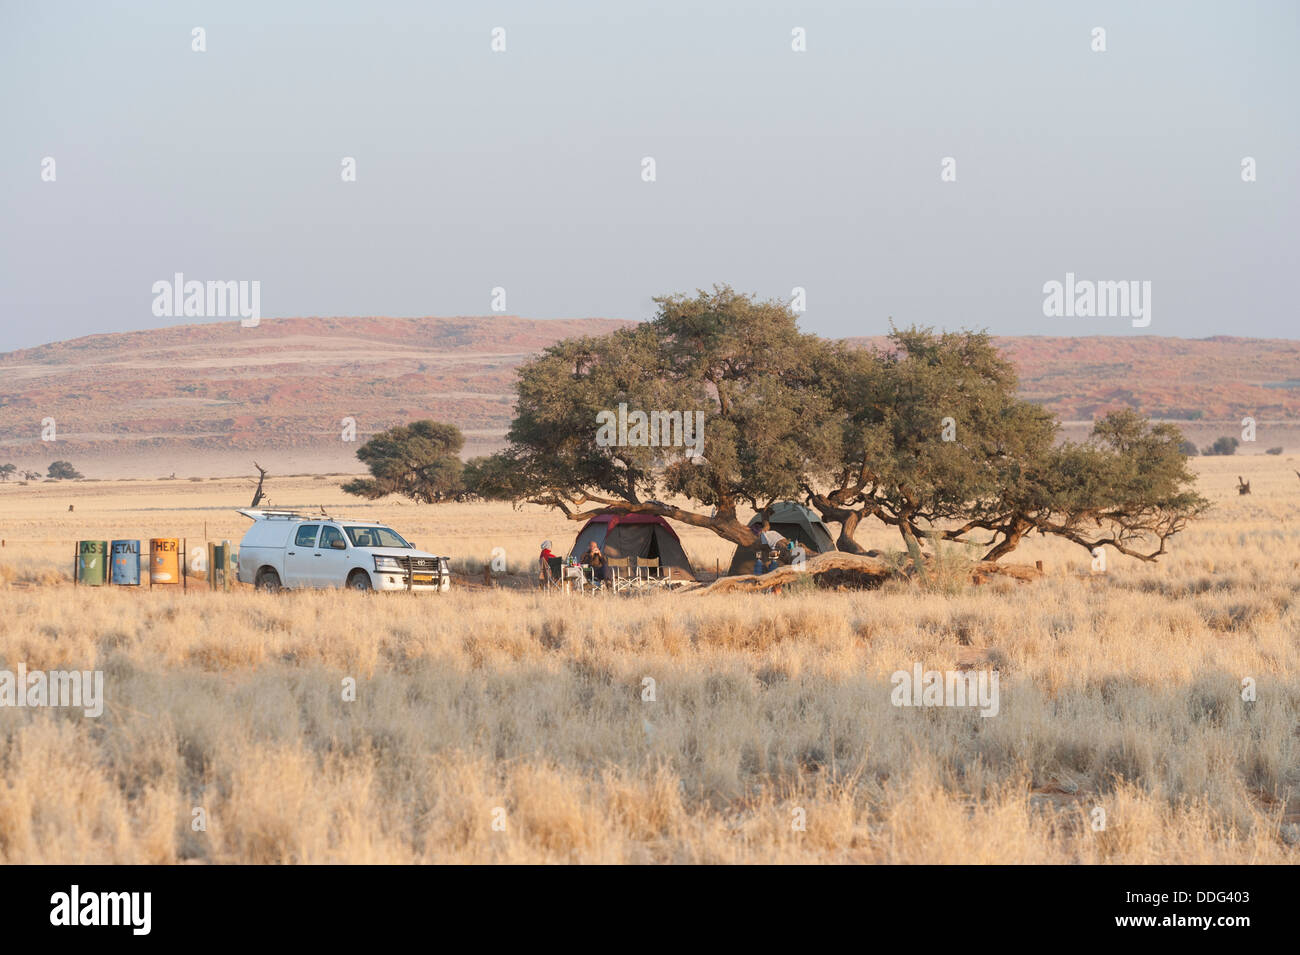 Camper vehicle and tents under trees, Sesriem campsite, Khomas region, Namibia - Stock Image